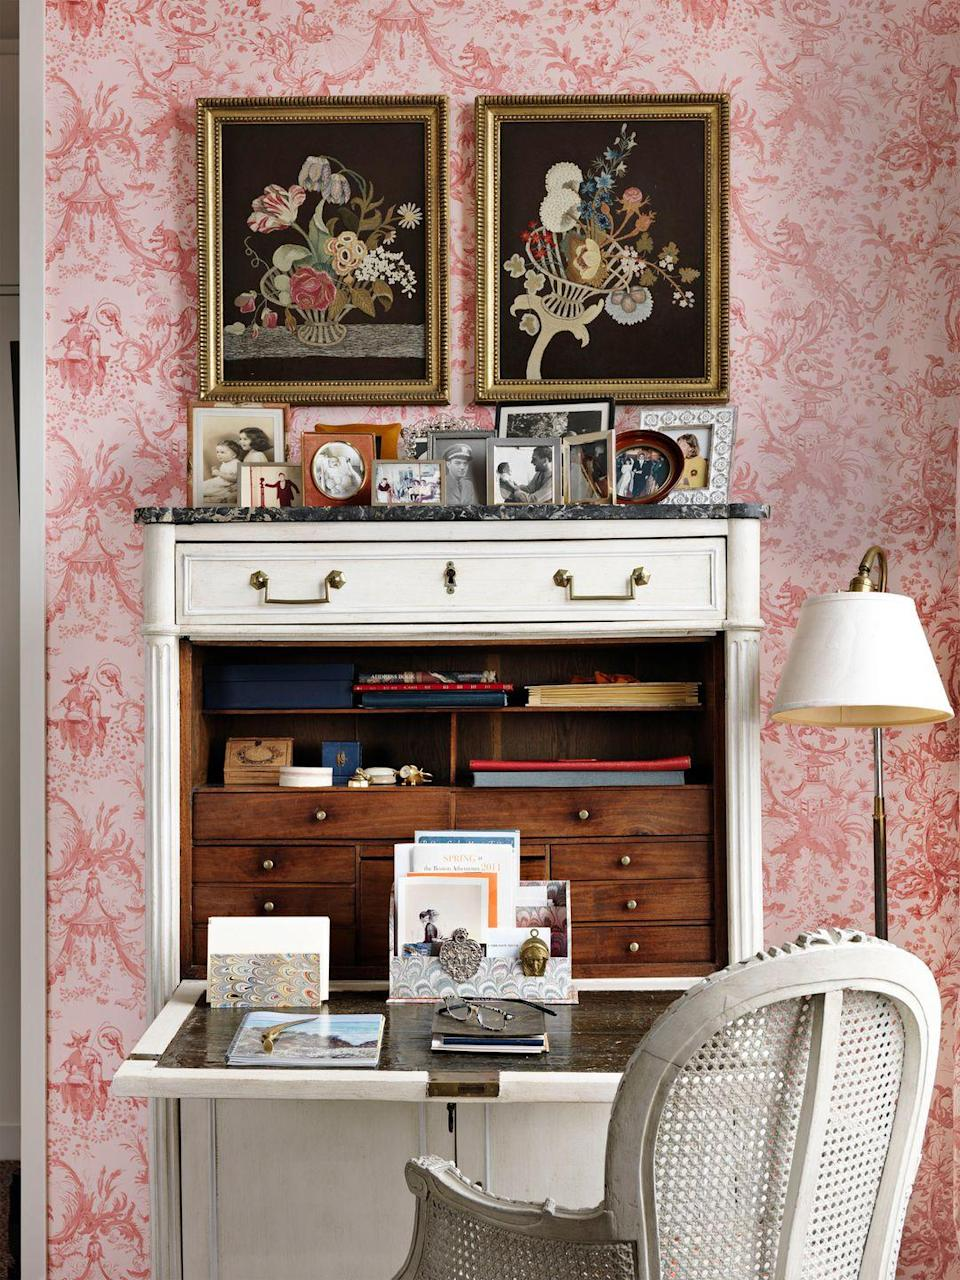 """<p>Keep your eyes peeled for a secretary desk to rehab at local antiques shops, vintage stores, estate sales, or flea markets. This one in a bedroom designed by <a href=""""https://www.libbycameron.com/"""" rel=""""nofollow noopener"""" target=""""_blank"""" data-ylk=""""slk:Libby Cameron"""" class=""""link rapid-noclick-resp"""">Libby Cameron</a> was refurbished with new paint, but you could also swap out the hardware or affix a thin marble slab to the top of it to add a personal touch. </p>"""